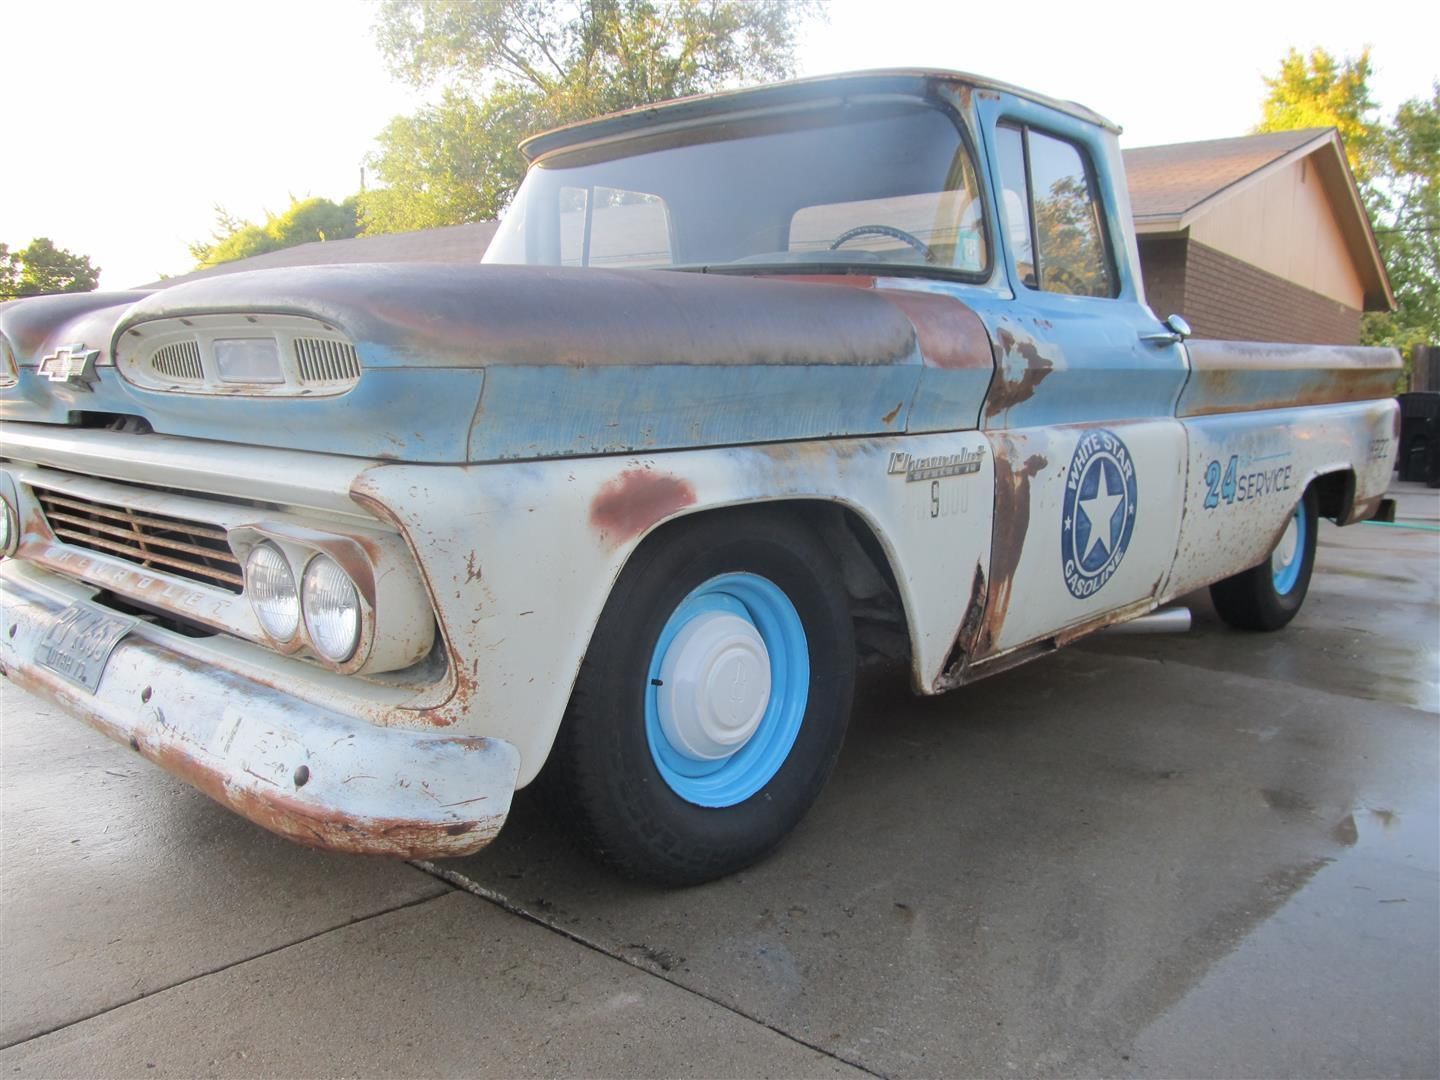 1960 chevy shop truck rat rod hot rod c10 apache patina